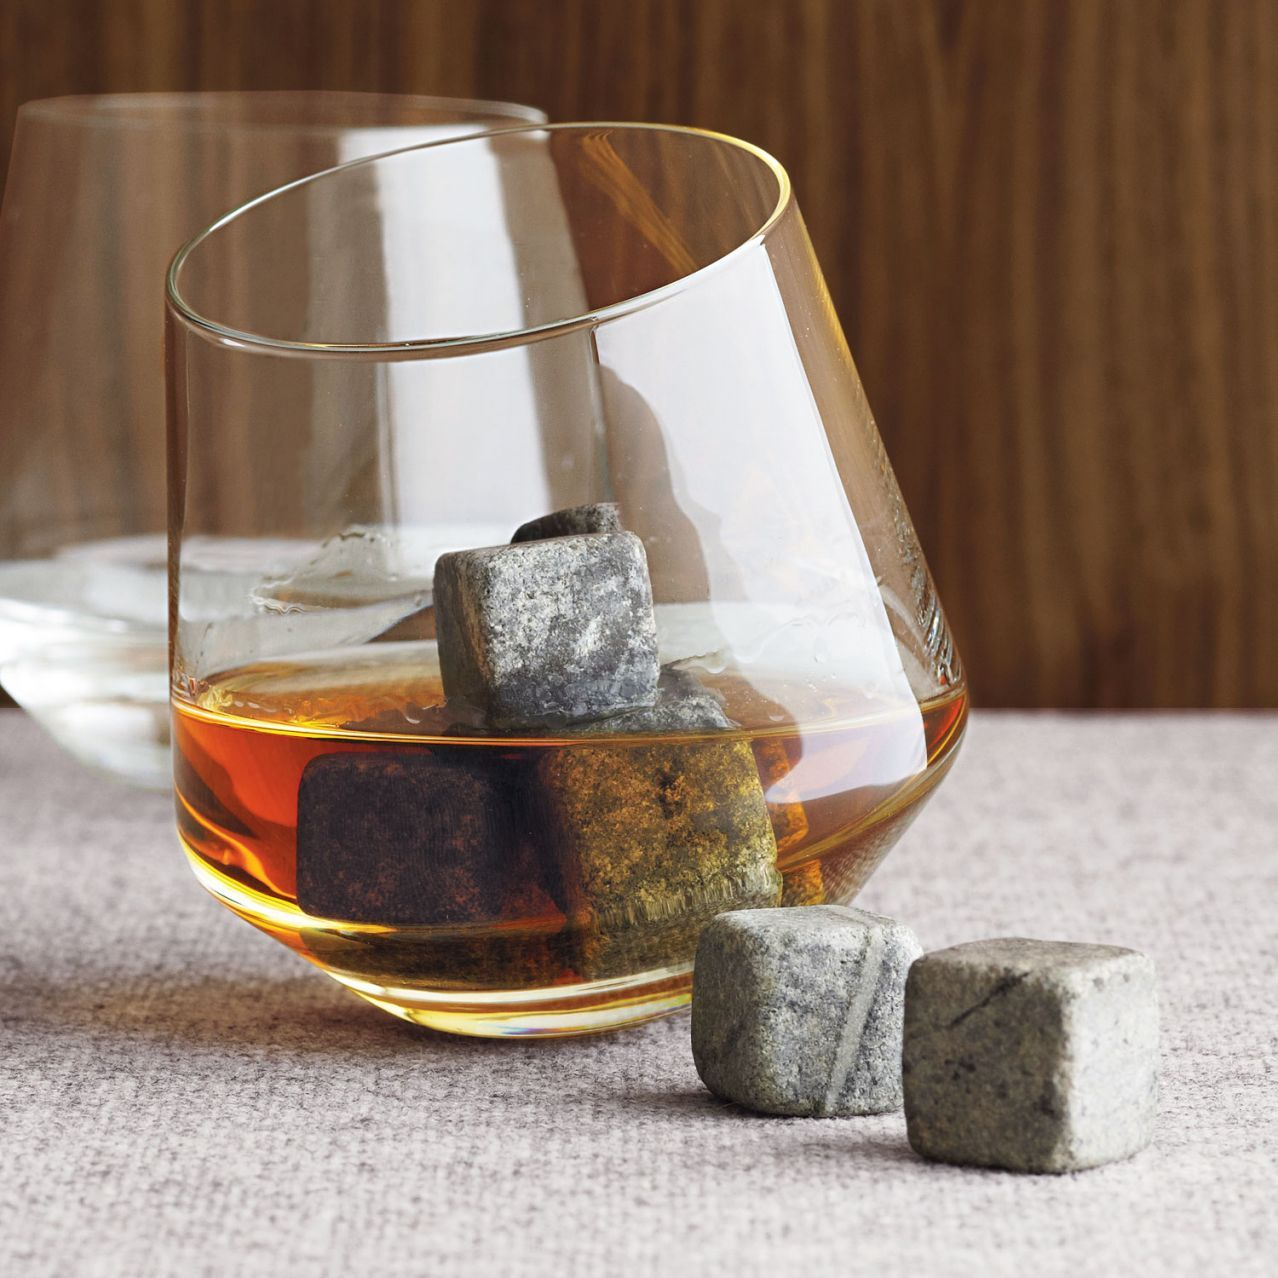 Whisky Stones, Set Of Nine At Sur La Table   Fatheru0027s Day Gift Idea For